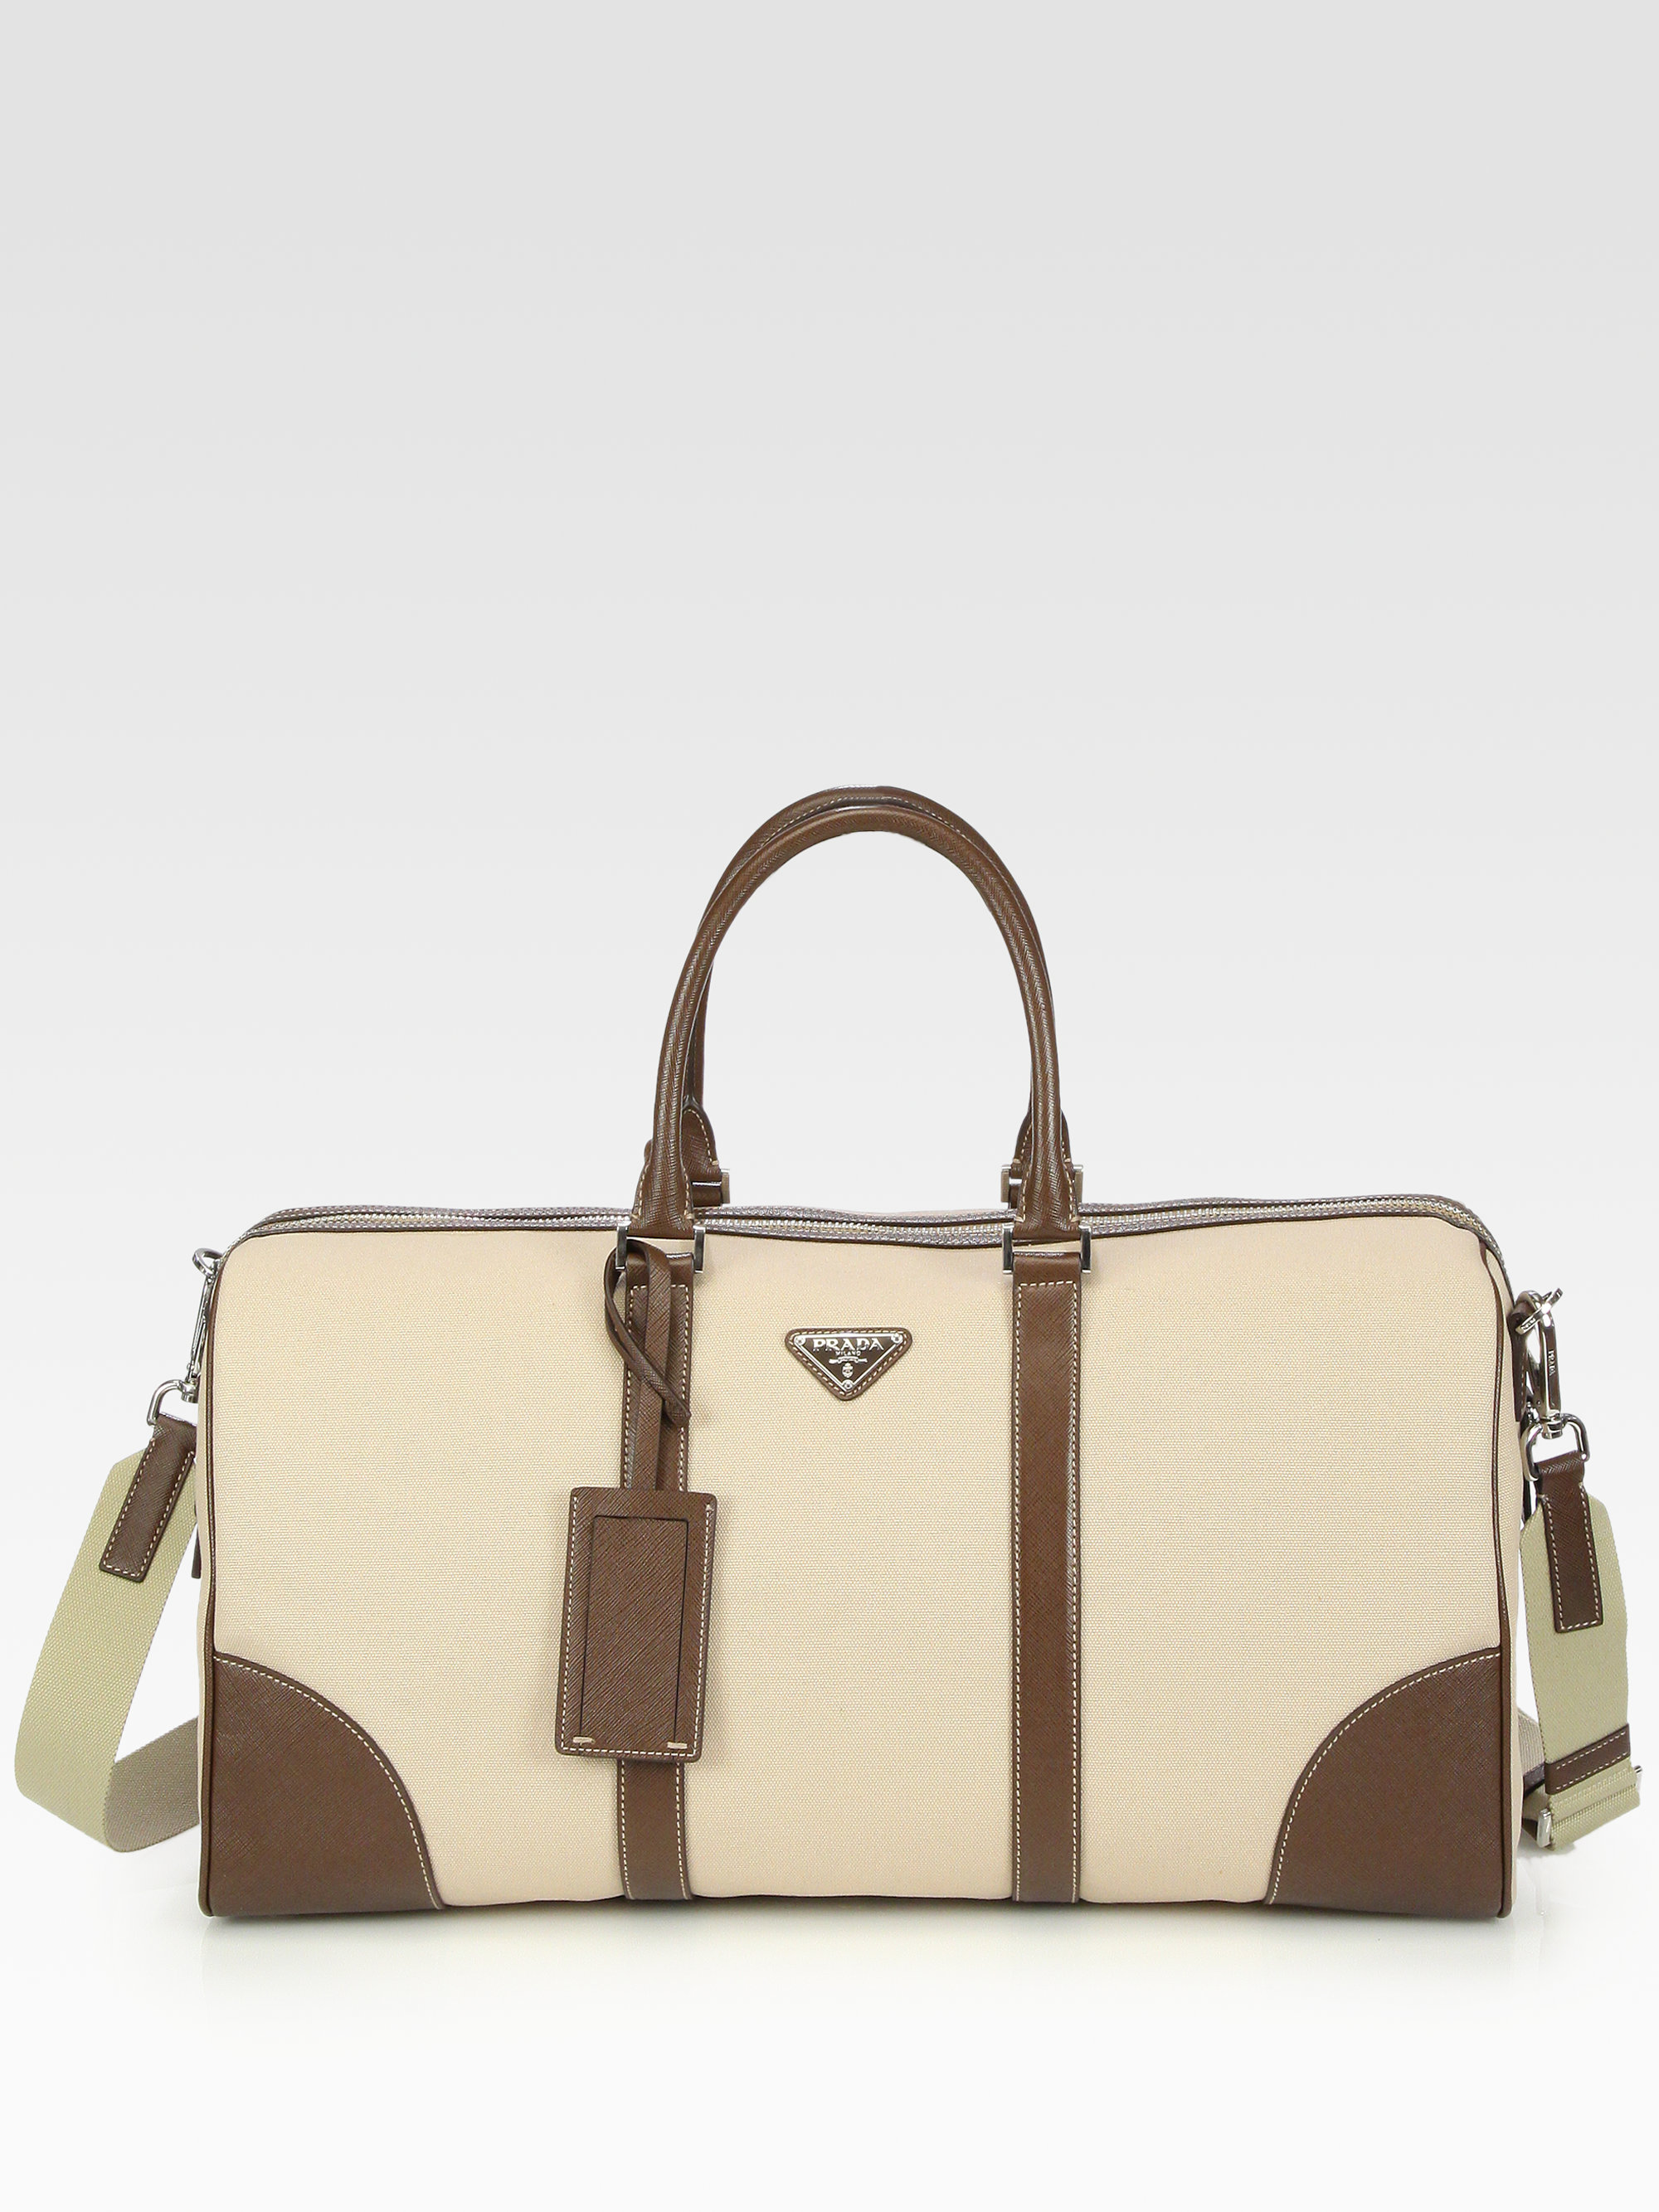 ... low cost lyst prada canvas and leather tote bag in natural for men  49f3a cdf77 c6289fe4810b5